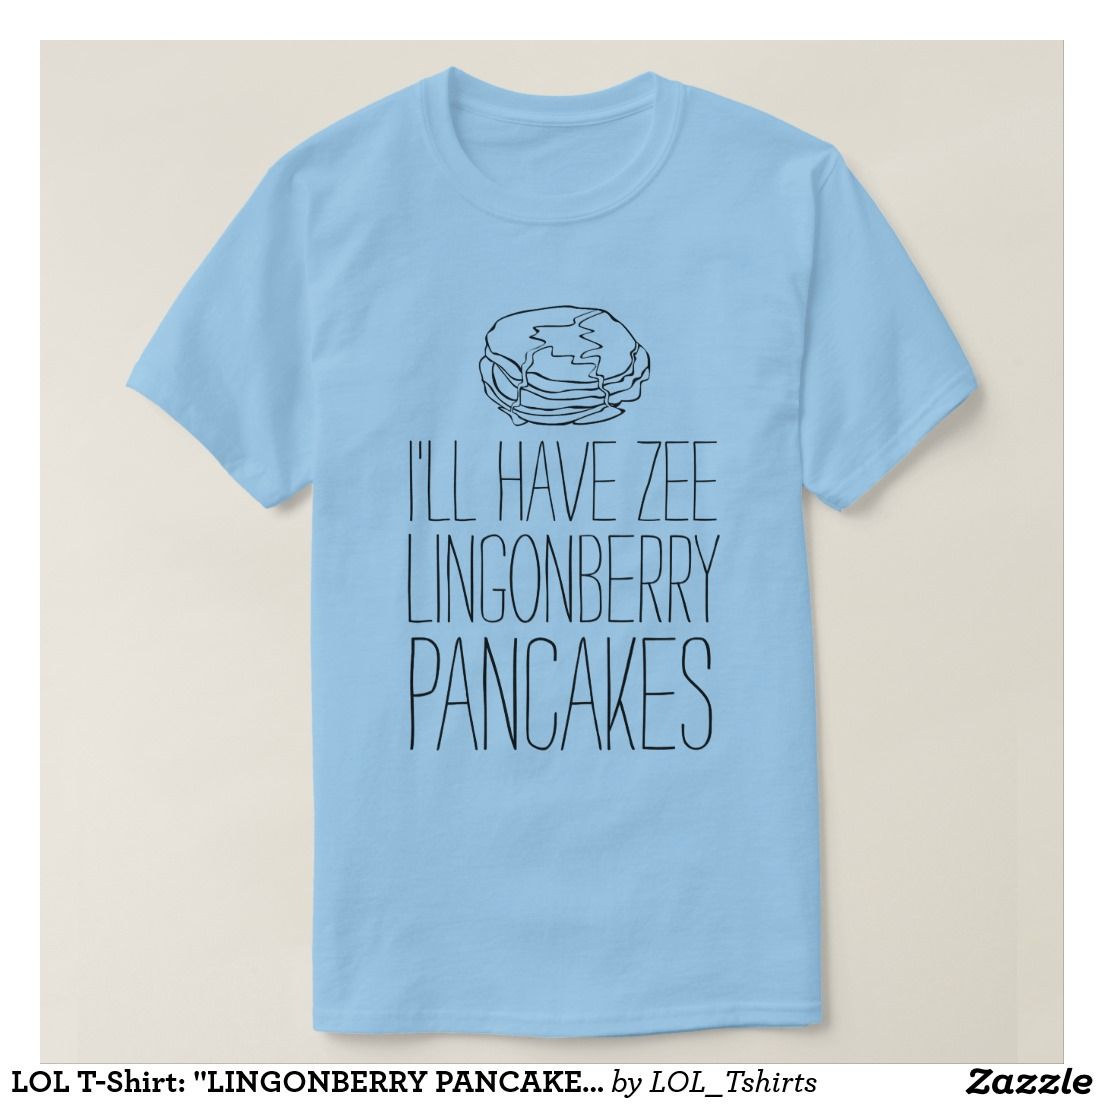 """LOL T-Shirt: """"LINGONBERRY PANCAKES"""" (""""The Big Lebowski"""" movie, comedy, funny quotes, movie quotes, LOL, humor, humorous, christmas gift, chanukah gift, Aimee Mann, Jeff Bridges)"""